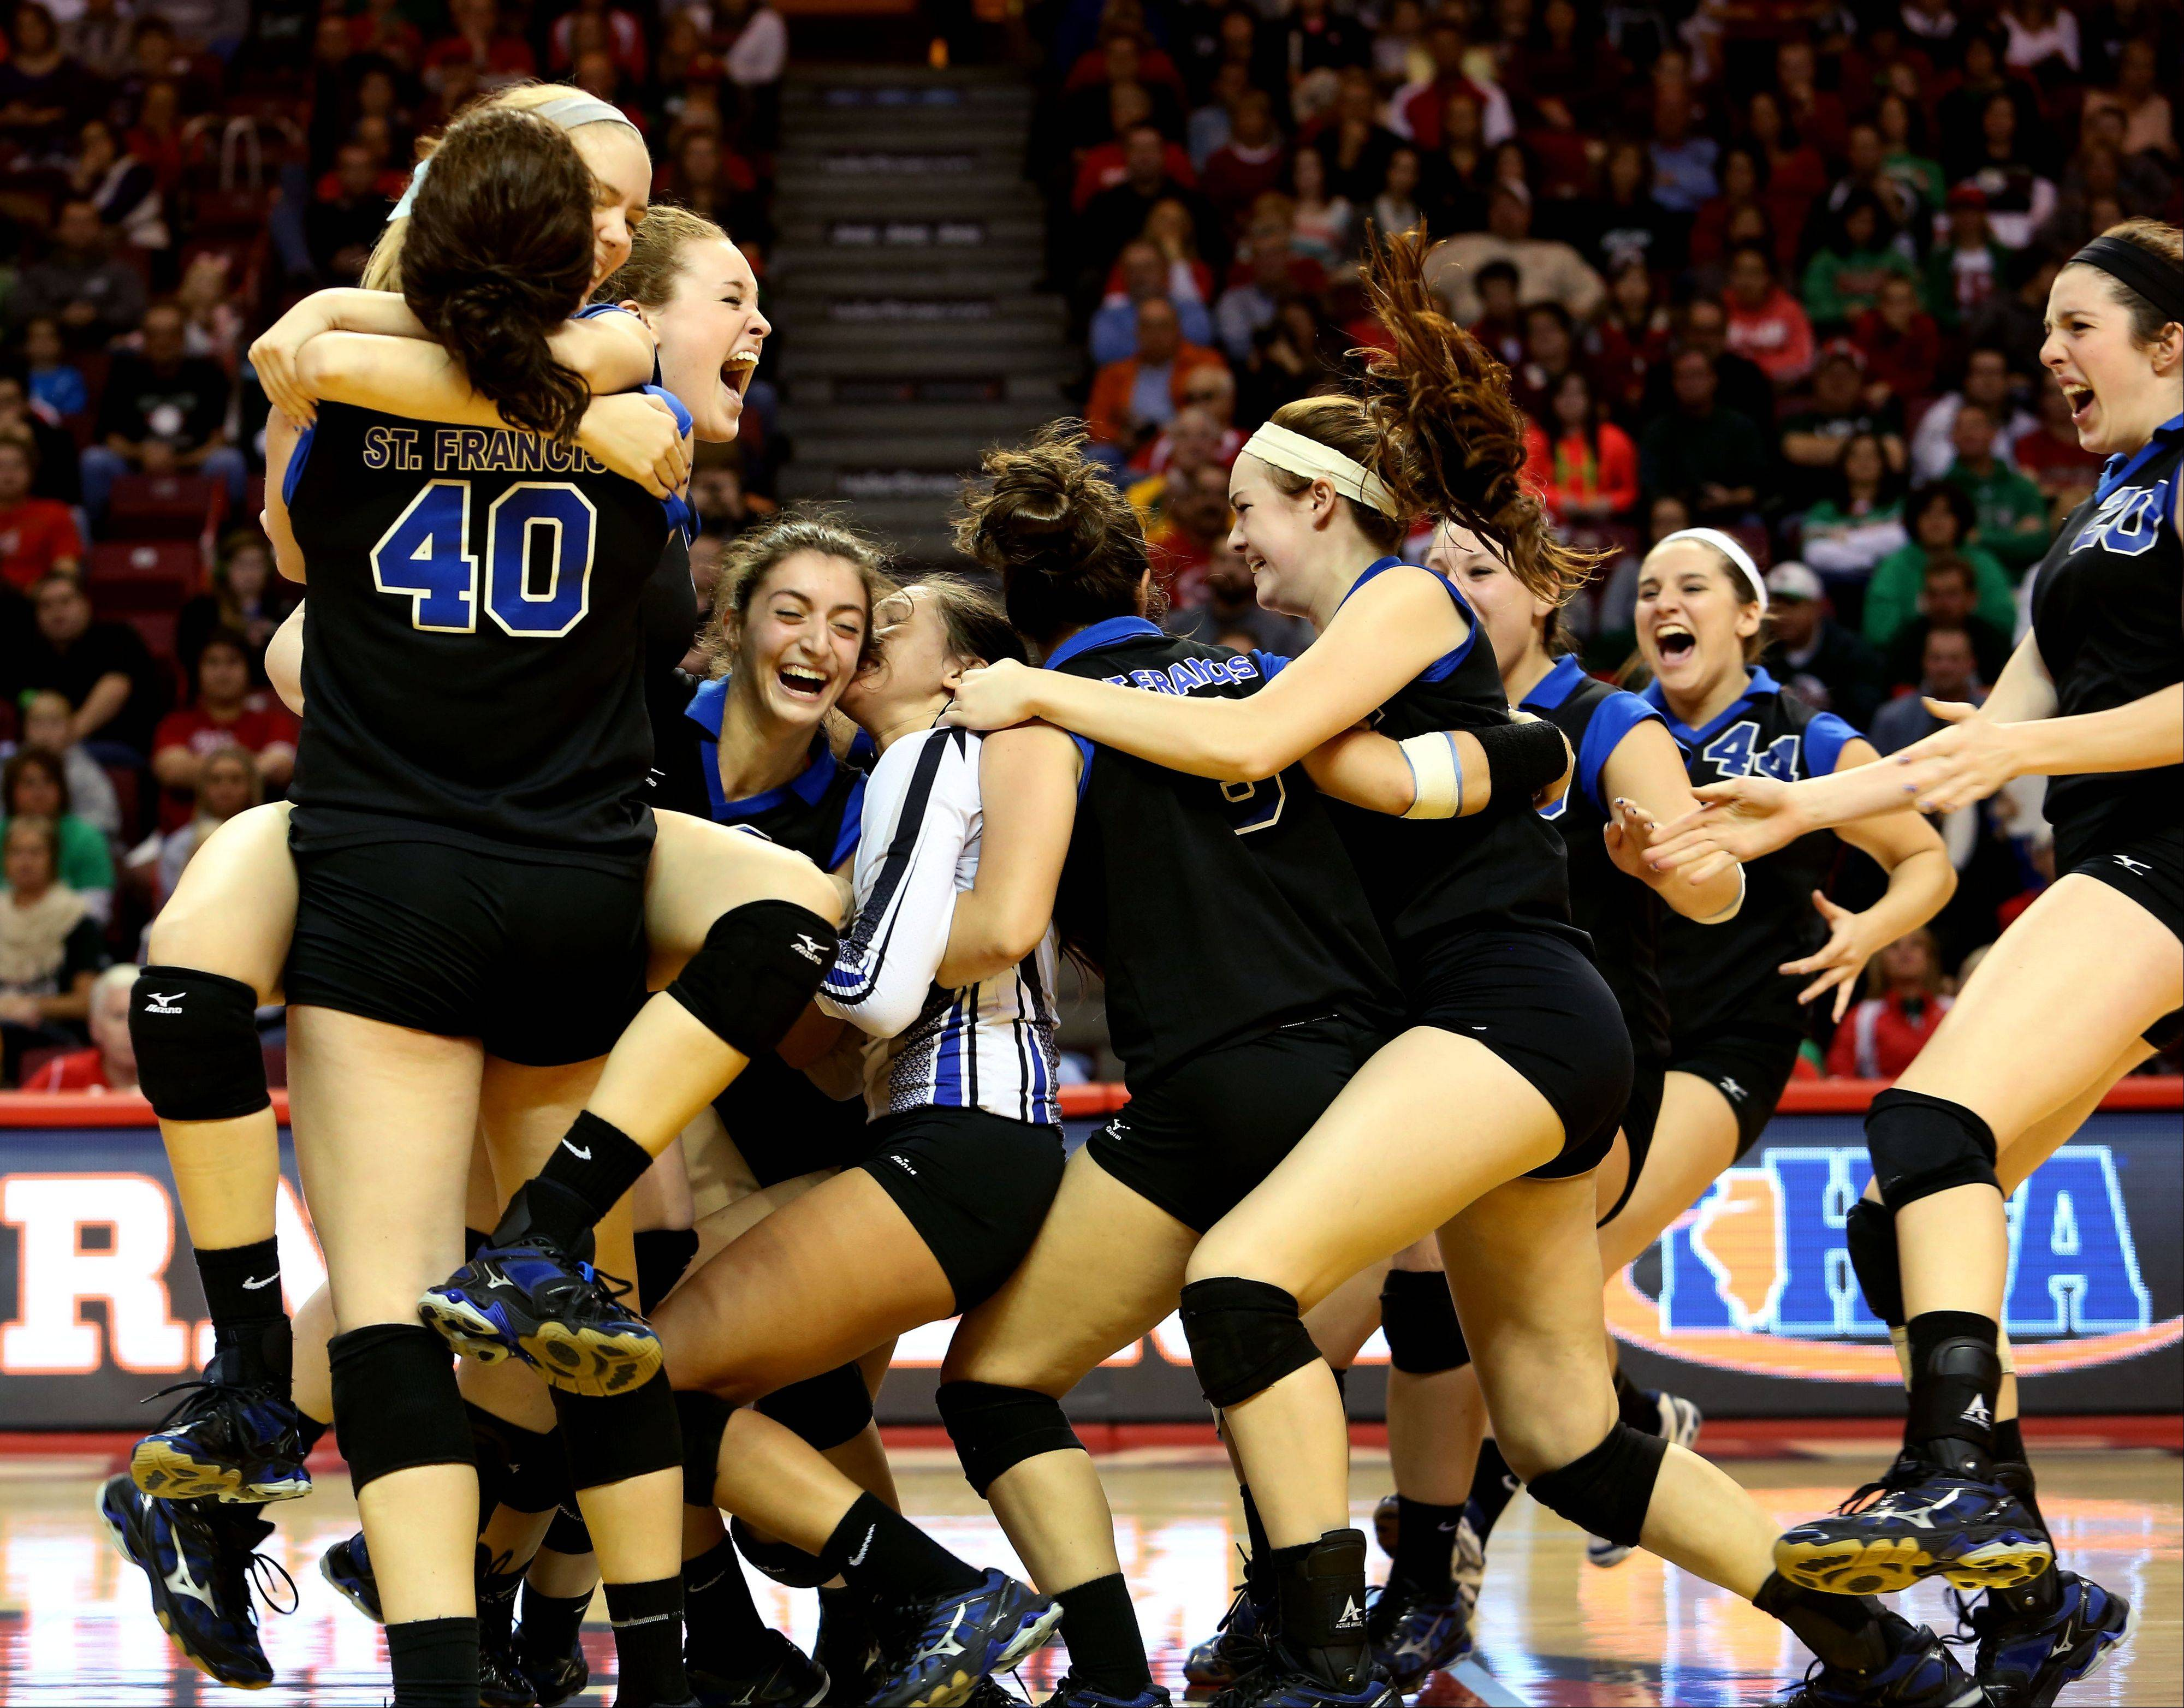 St. Francis celebrate after beating LaSalle-Peru in two games for the Class 3A championship in girls volleyball on Saturday in Normal.